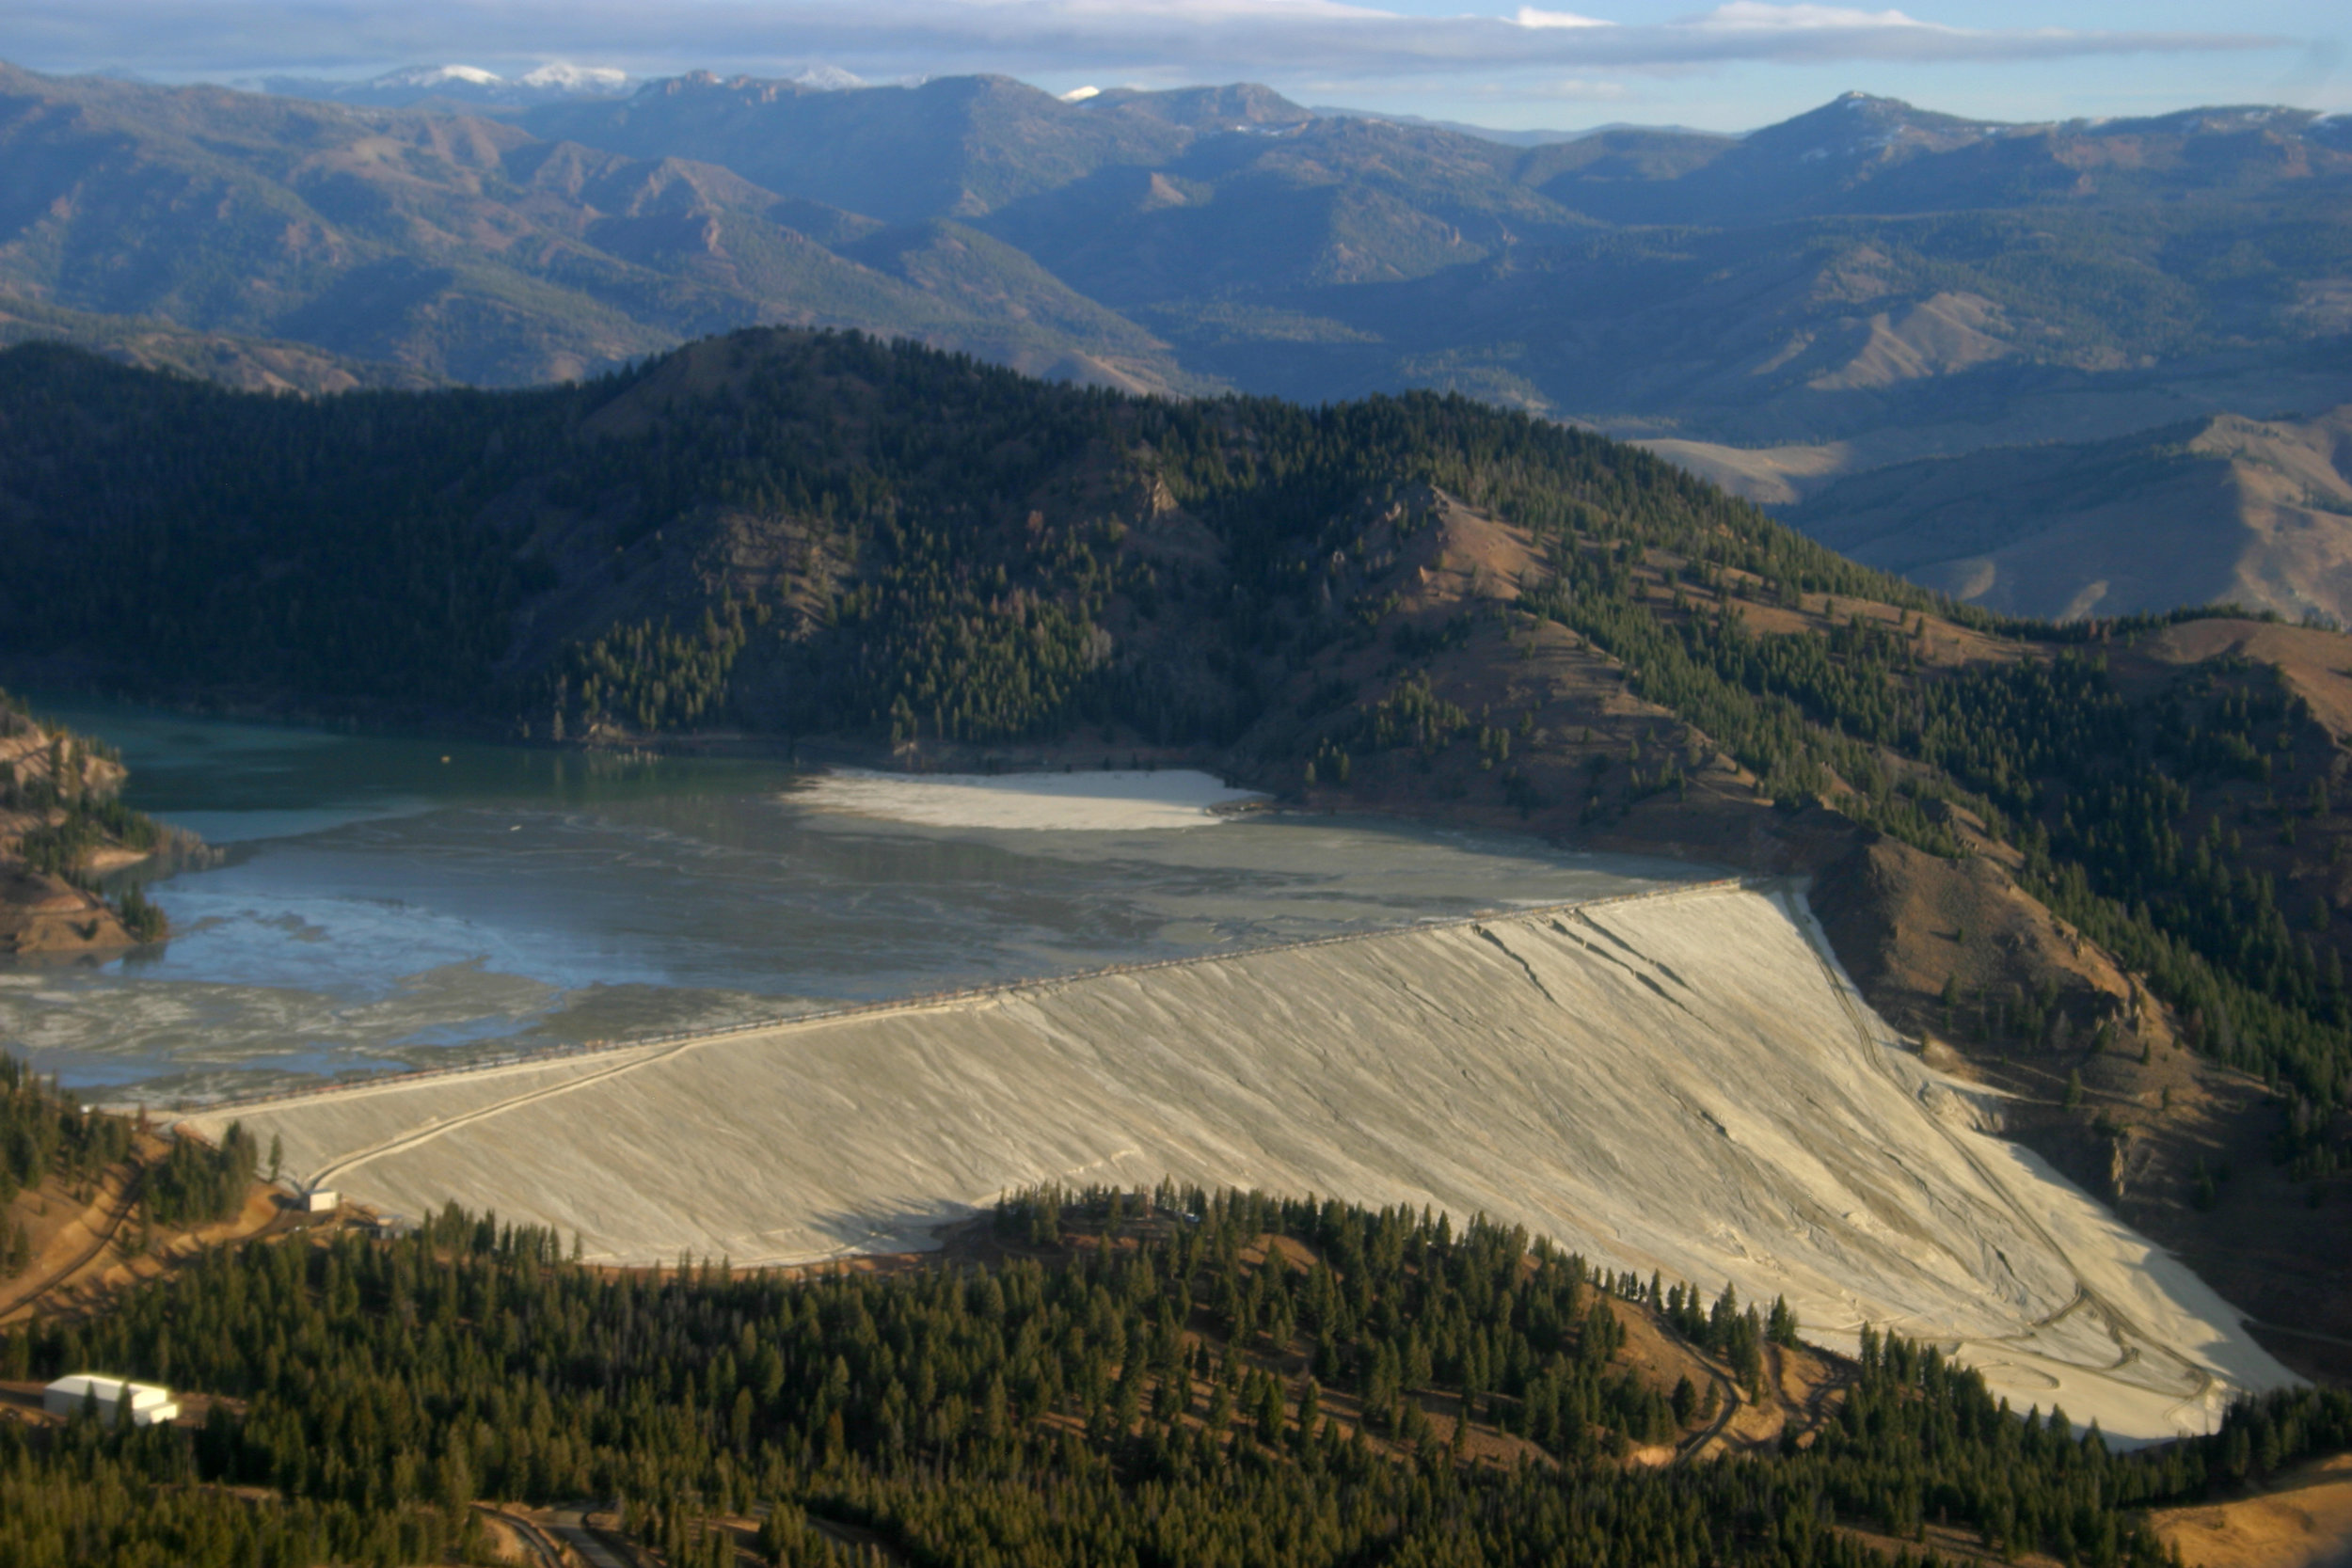 The Thompason Creek Mine's tailings dam is an indication of the kind of environmental damage open-pit mining can inflict.